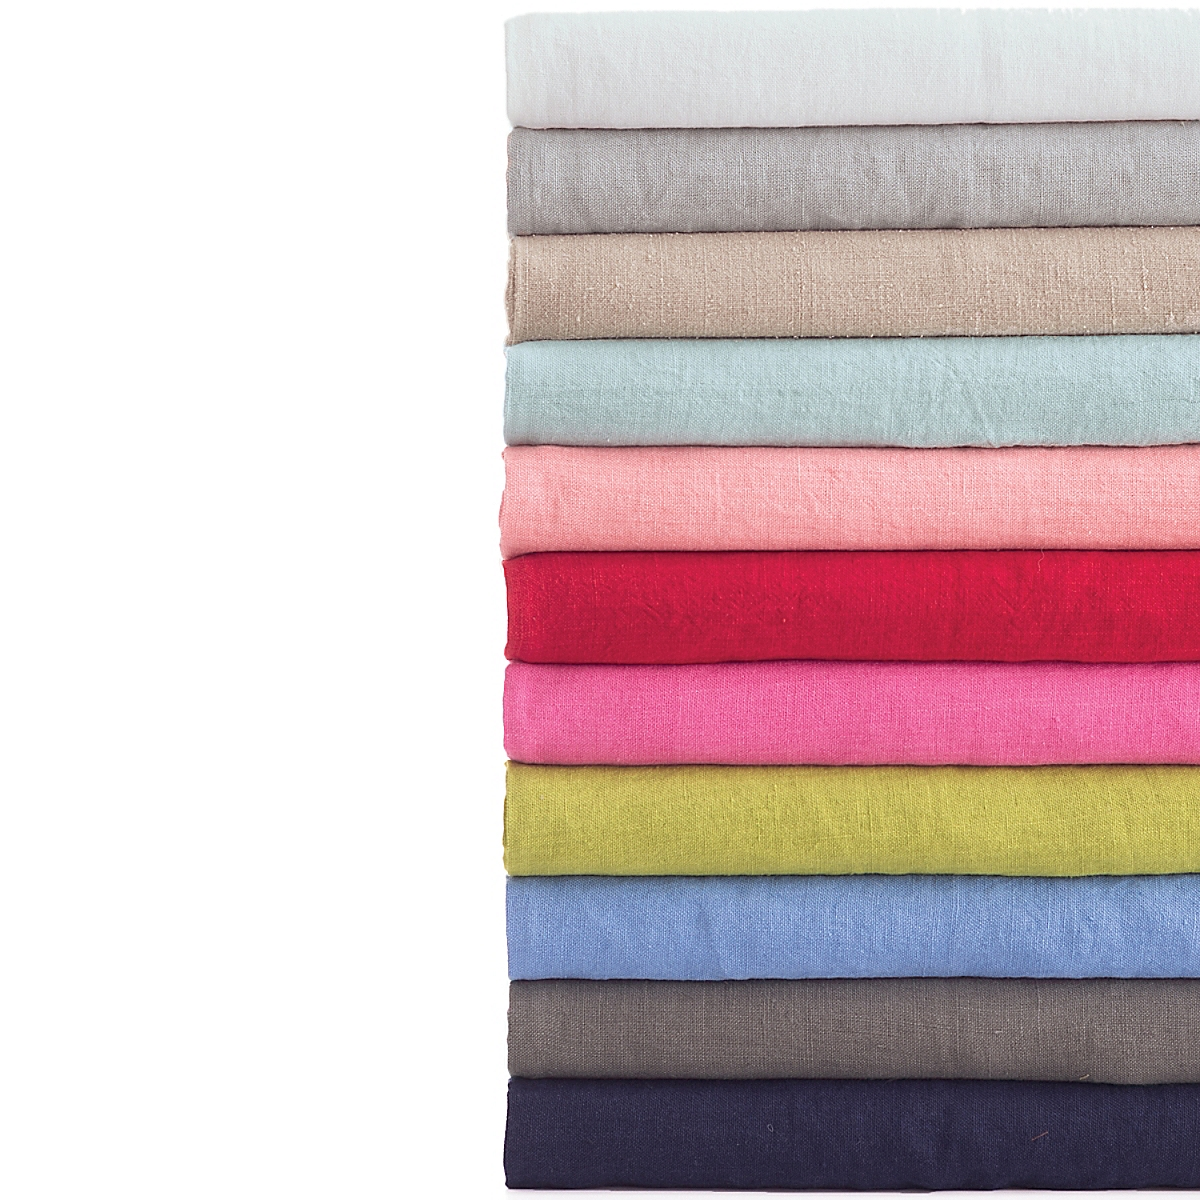 Stone Washed Linen Periwinkle Throw